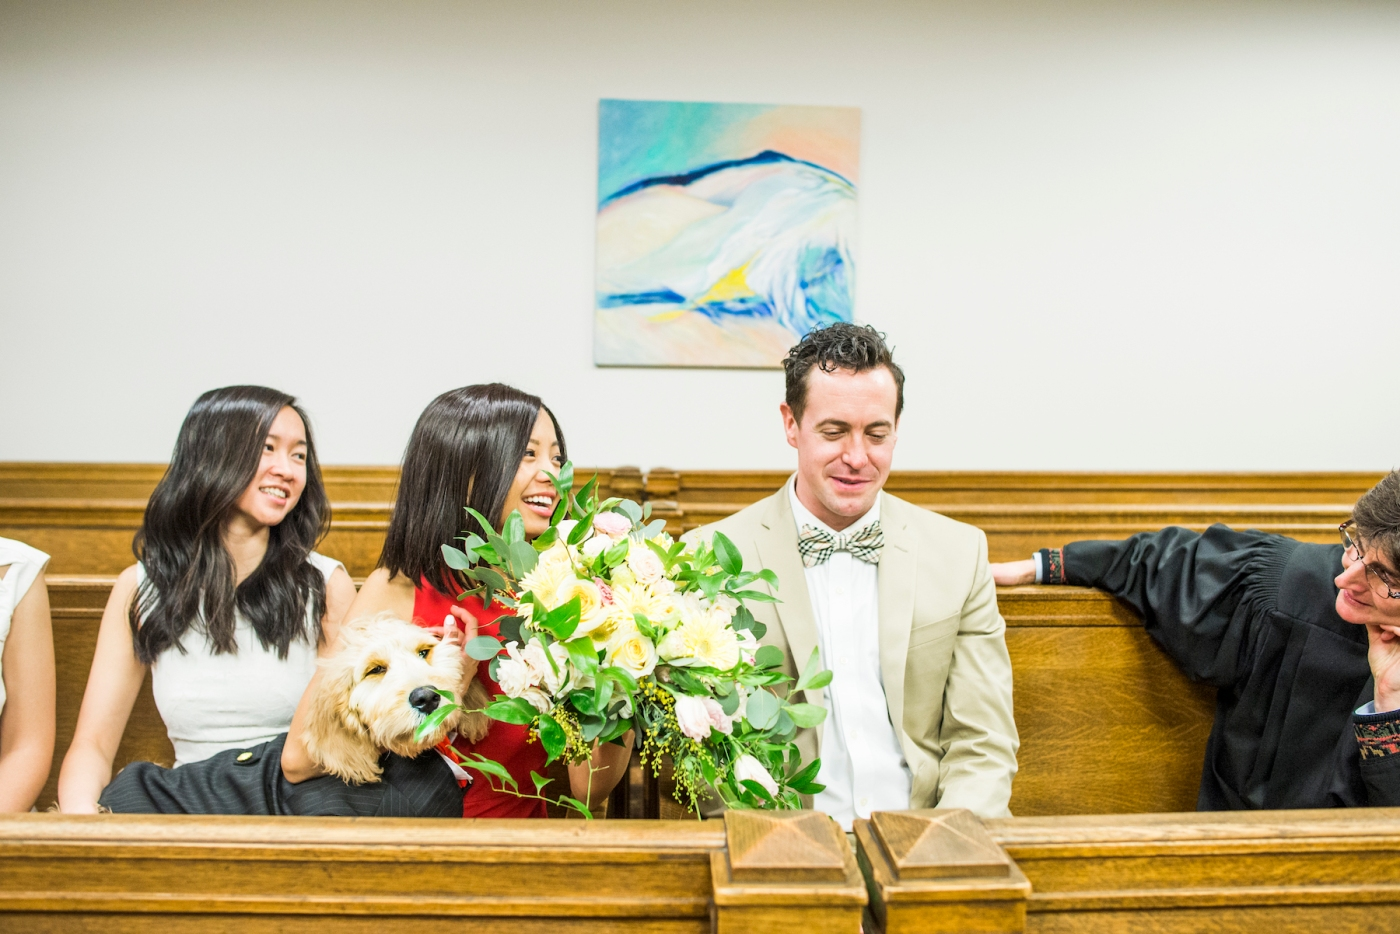 photography_by_jane_speleers_2017_seattle_court_house_wedding-dsc_9093